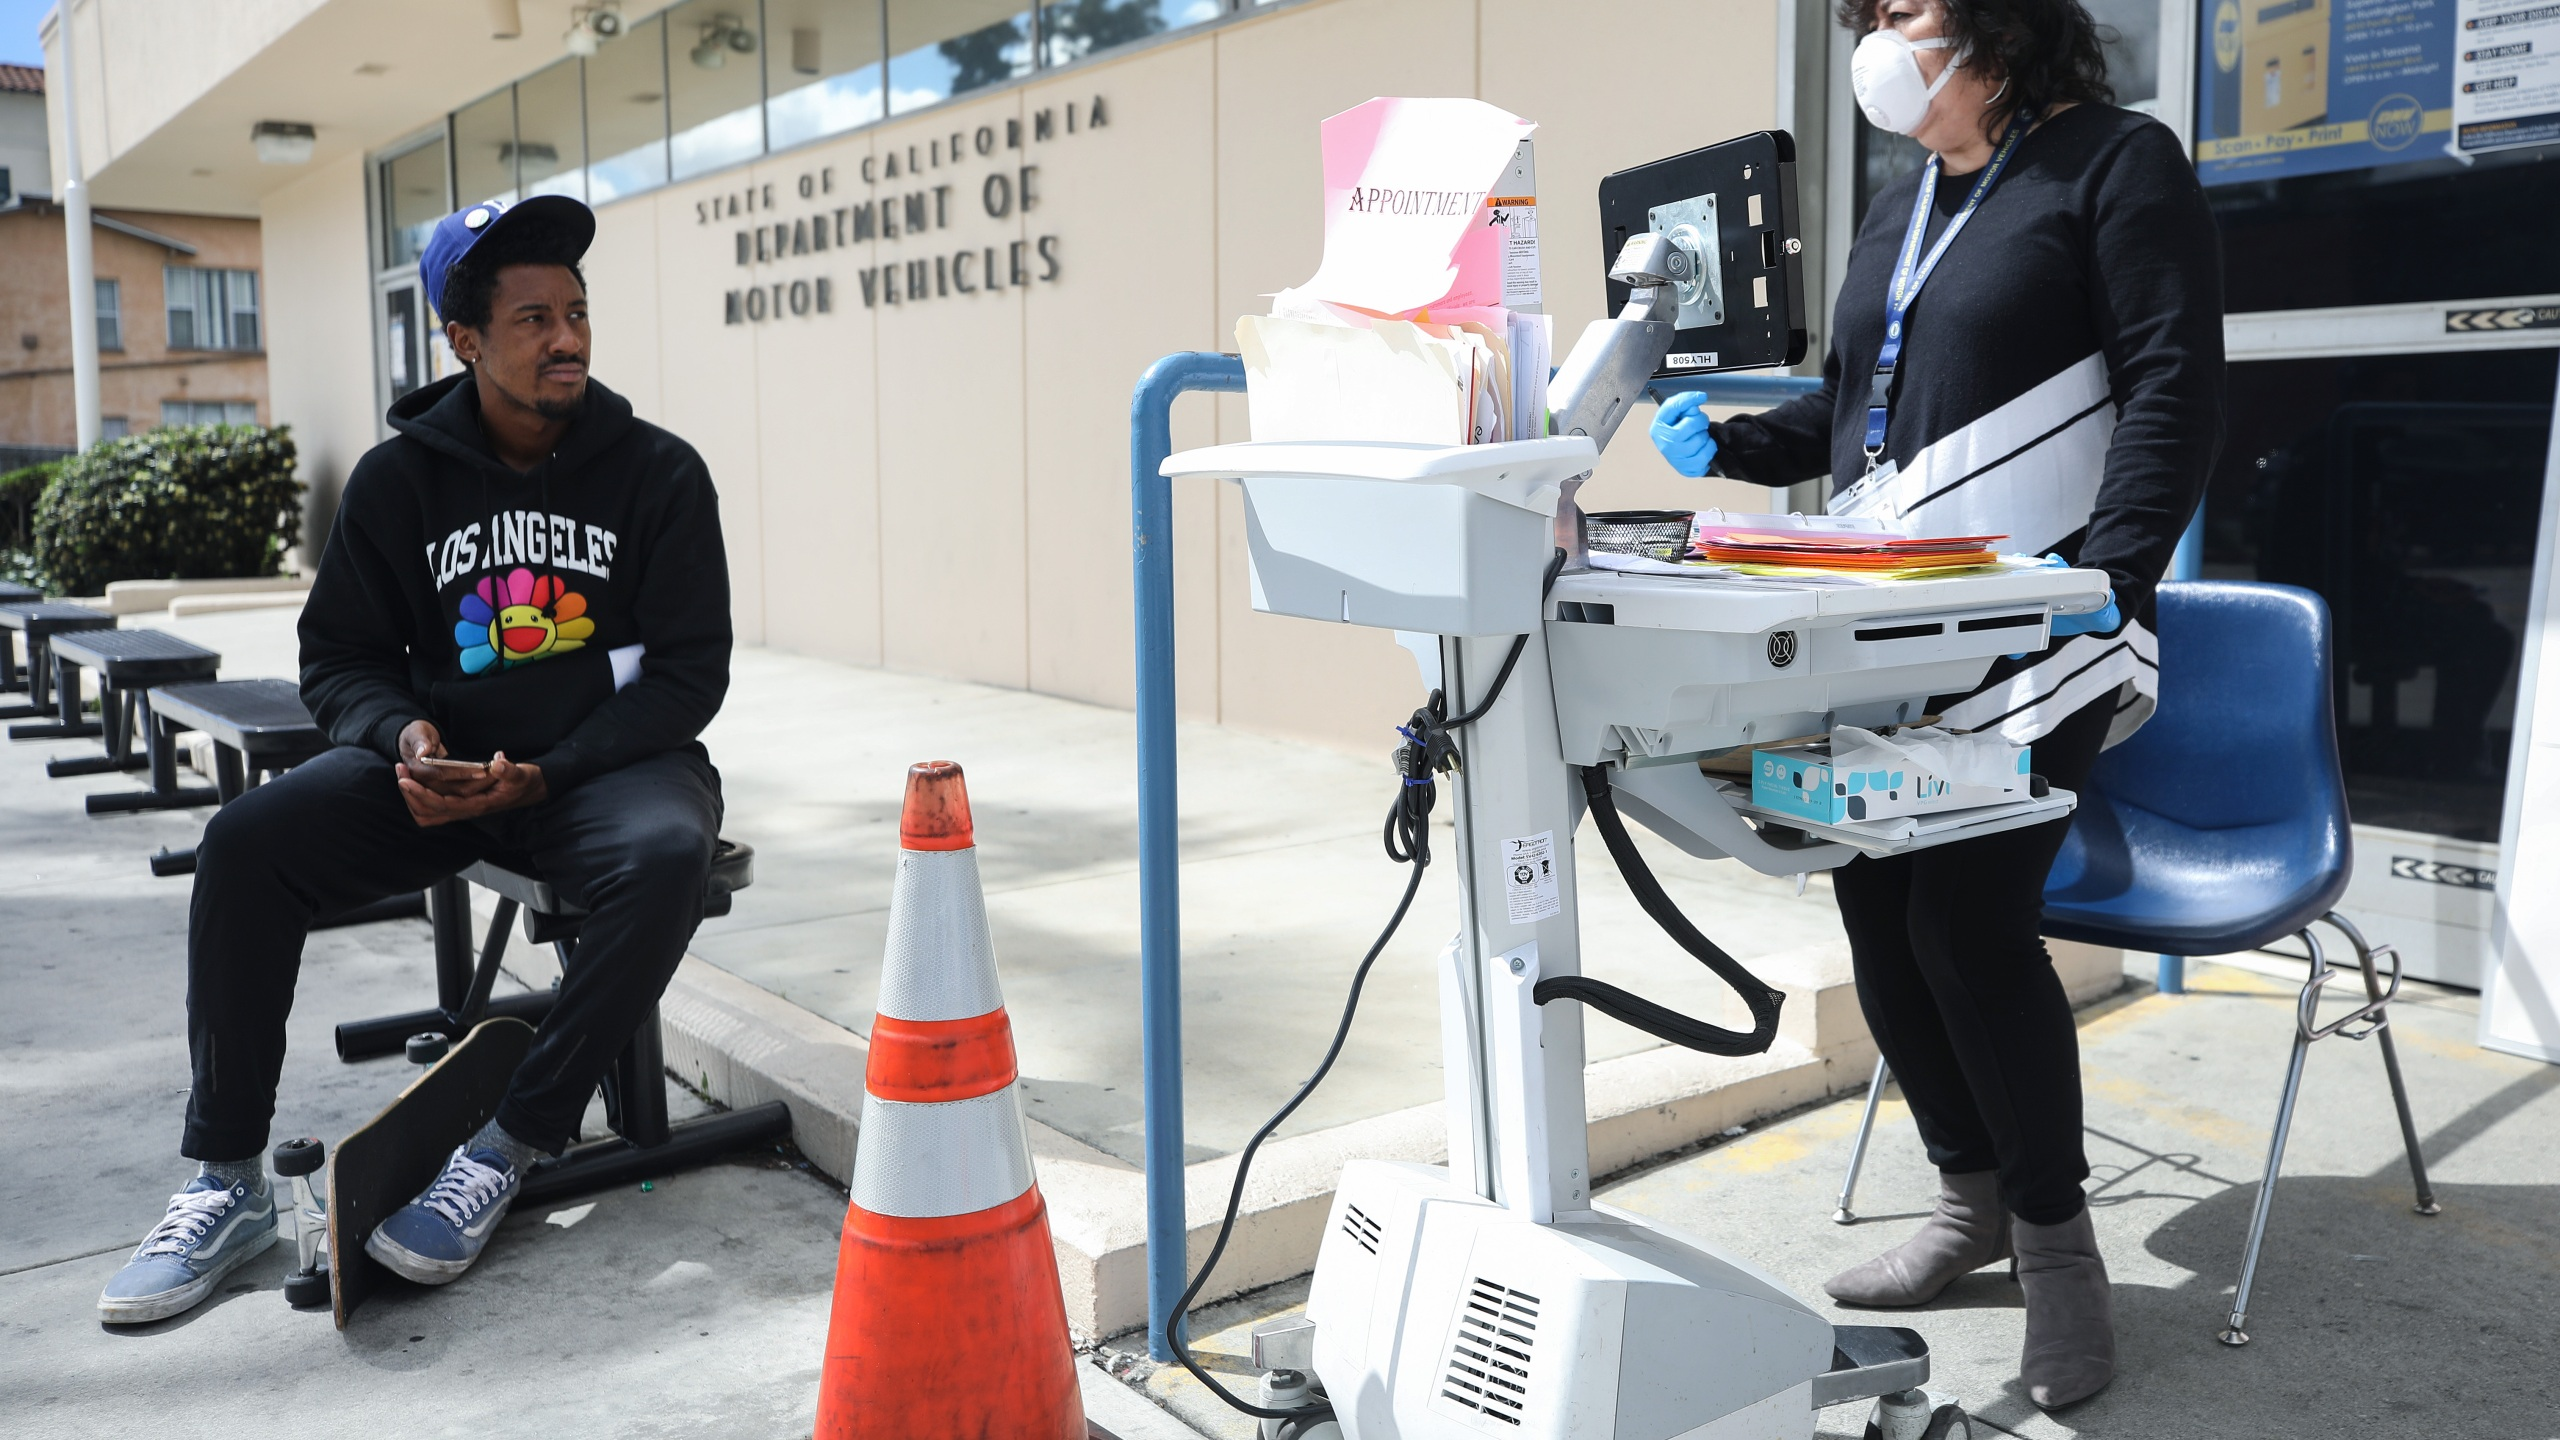 A Department of Motor Vehicles worker speaks with a man who did not have an appointment at an appointment desk in front of the DMV building, with a cone used to implement social distancing, on March 23, 2020 in Los Angeles. (Mario Tama/Getty Images)